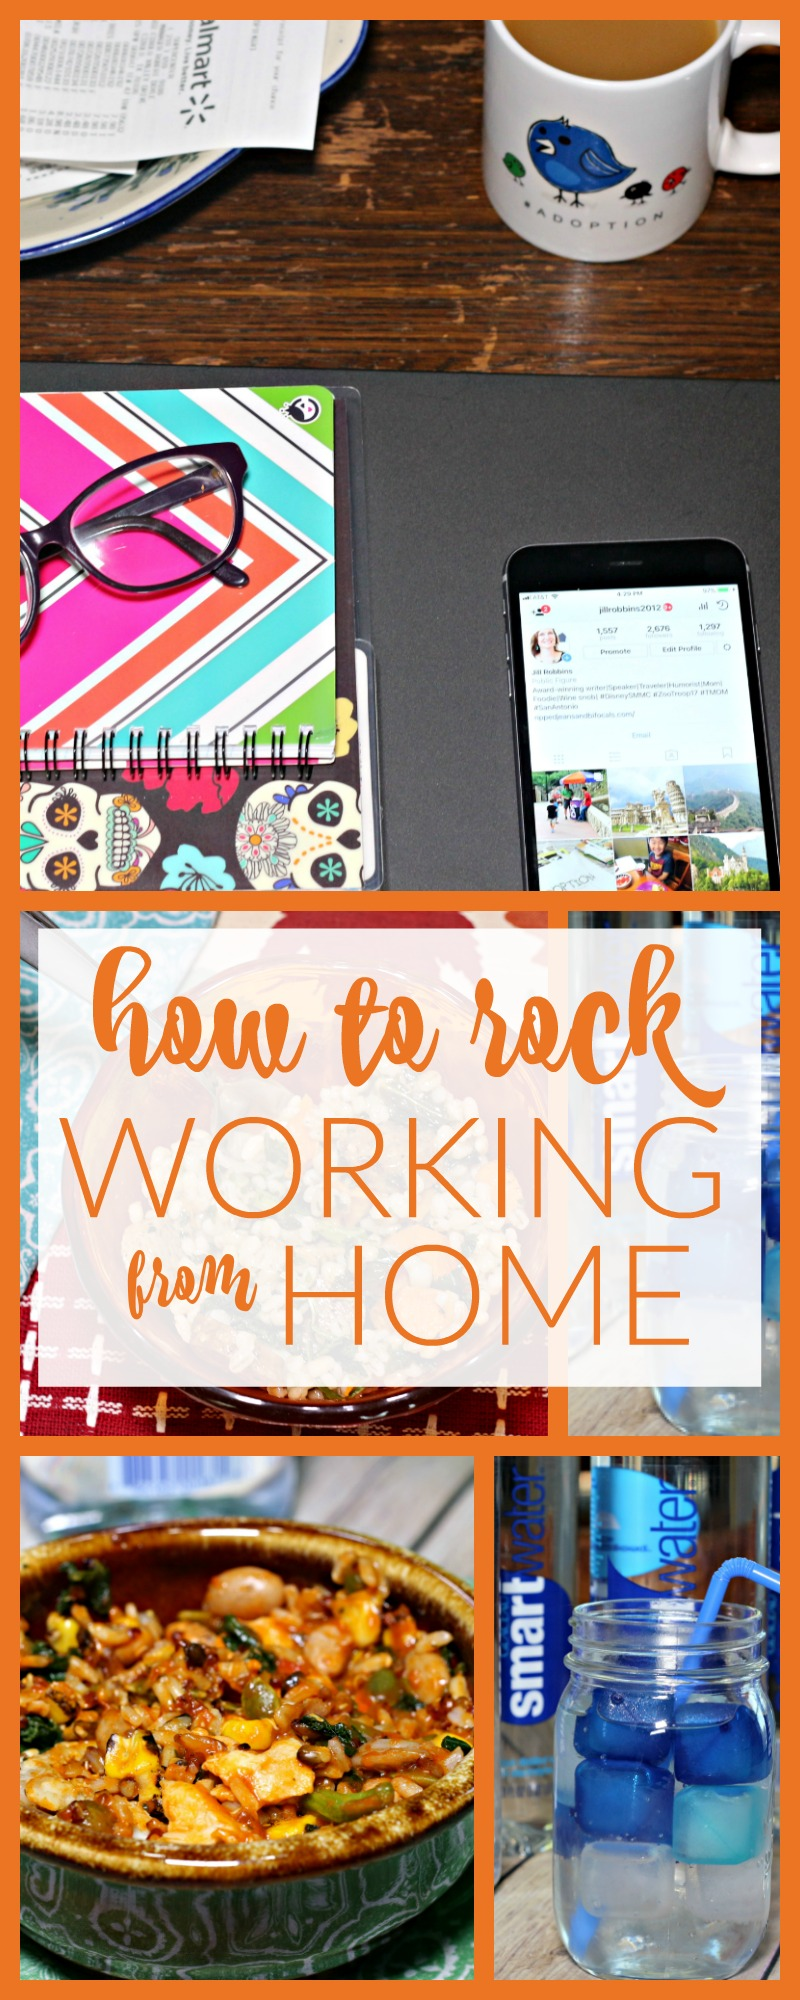 How to rock working from home Ripped Jeans and Bifocals